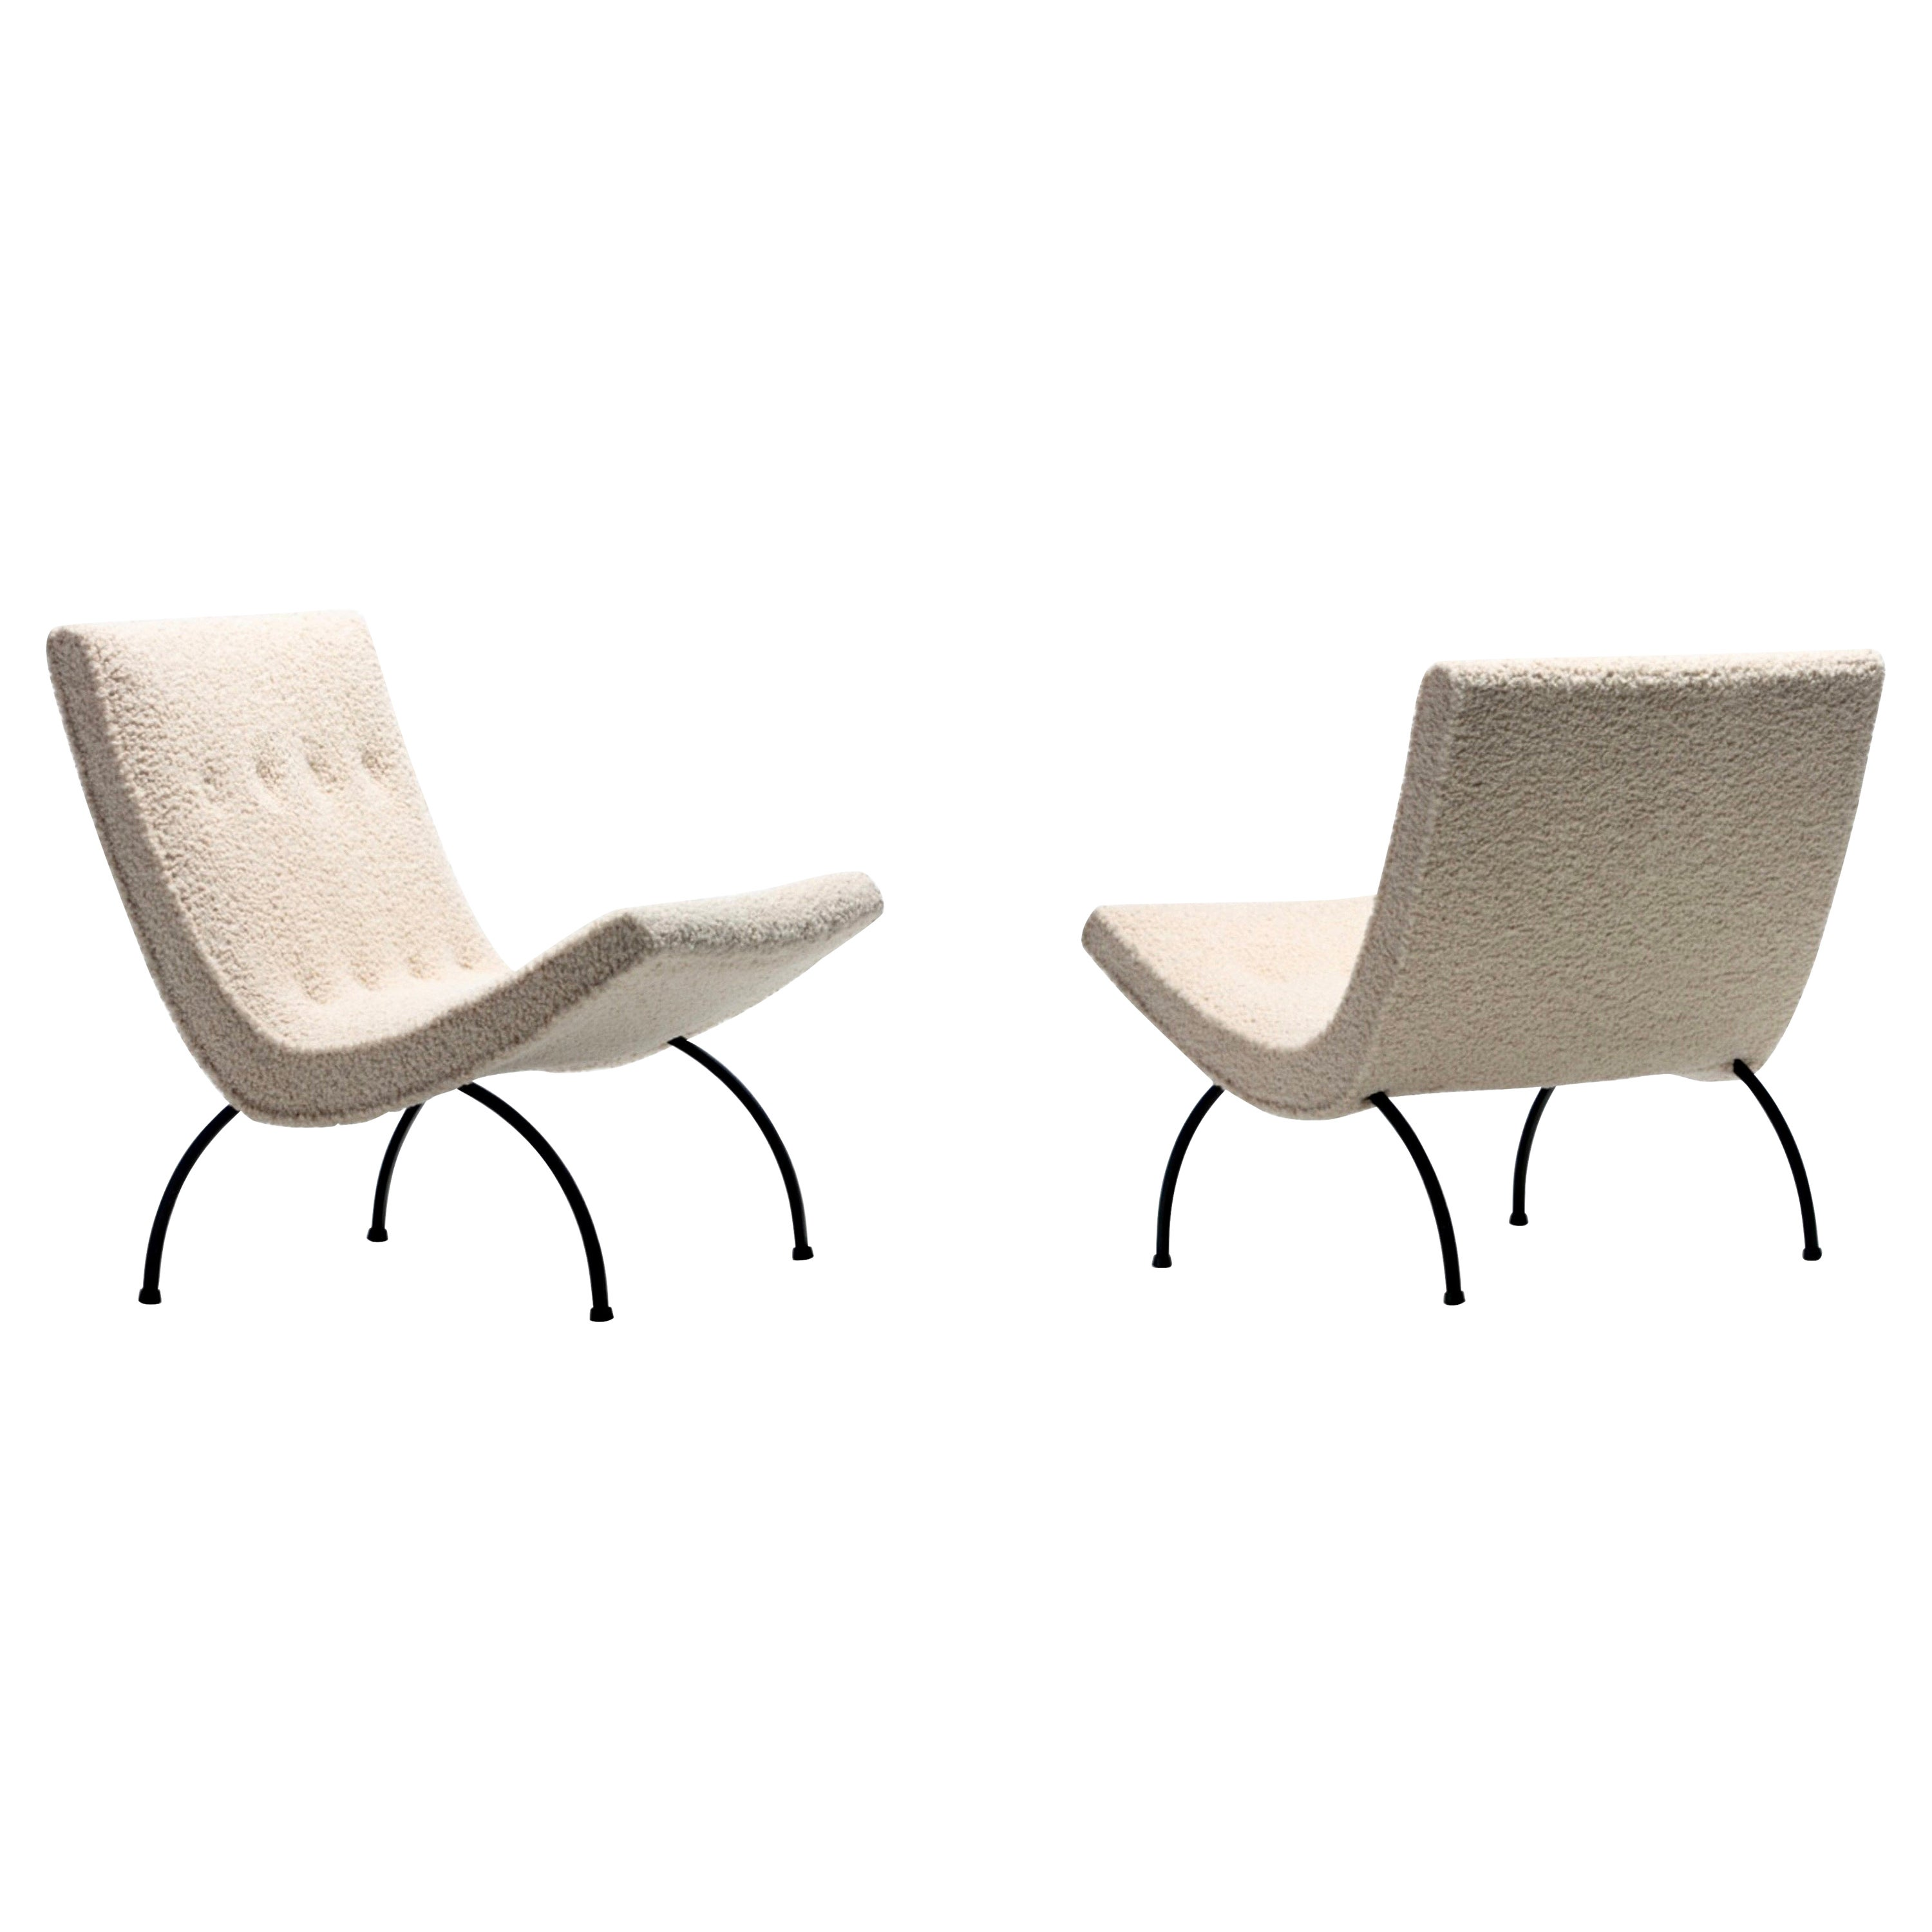 Pair of Milo Baughman Scoop Chairs in Ivory Bouclé with Iron Legs c. 1950s